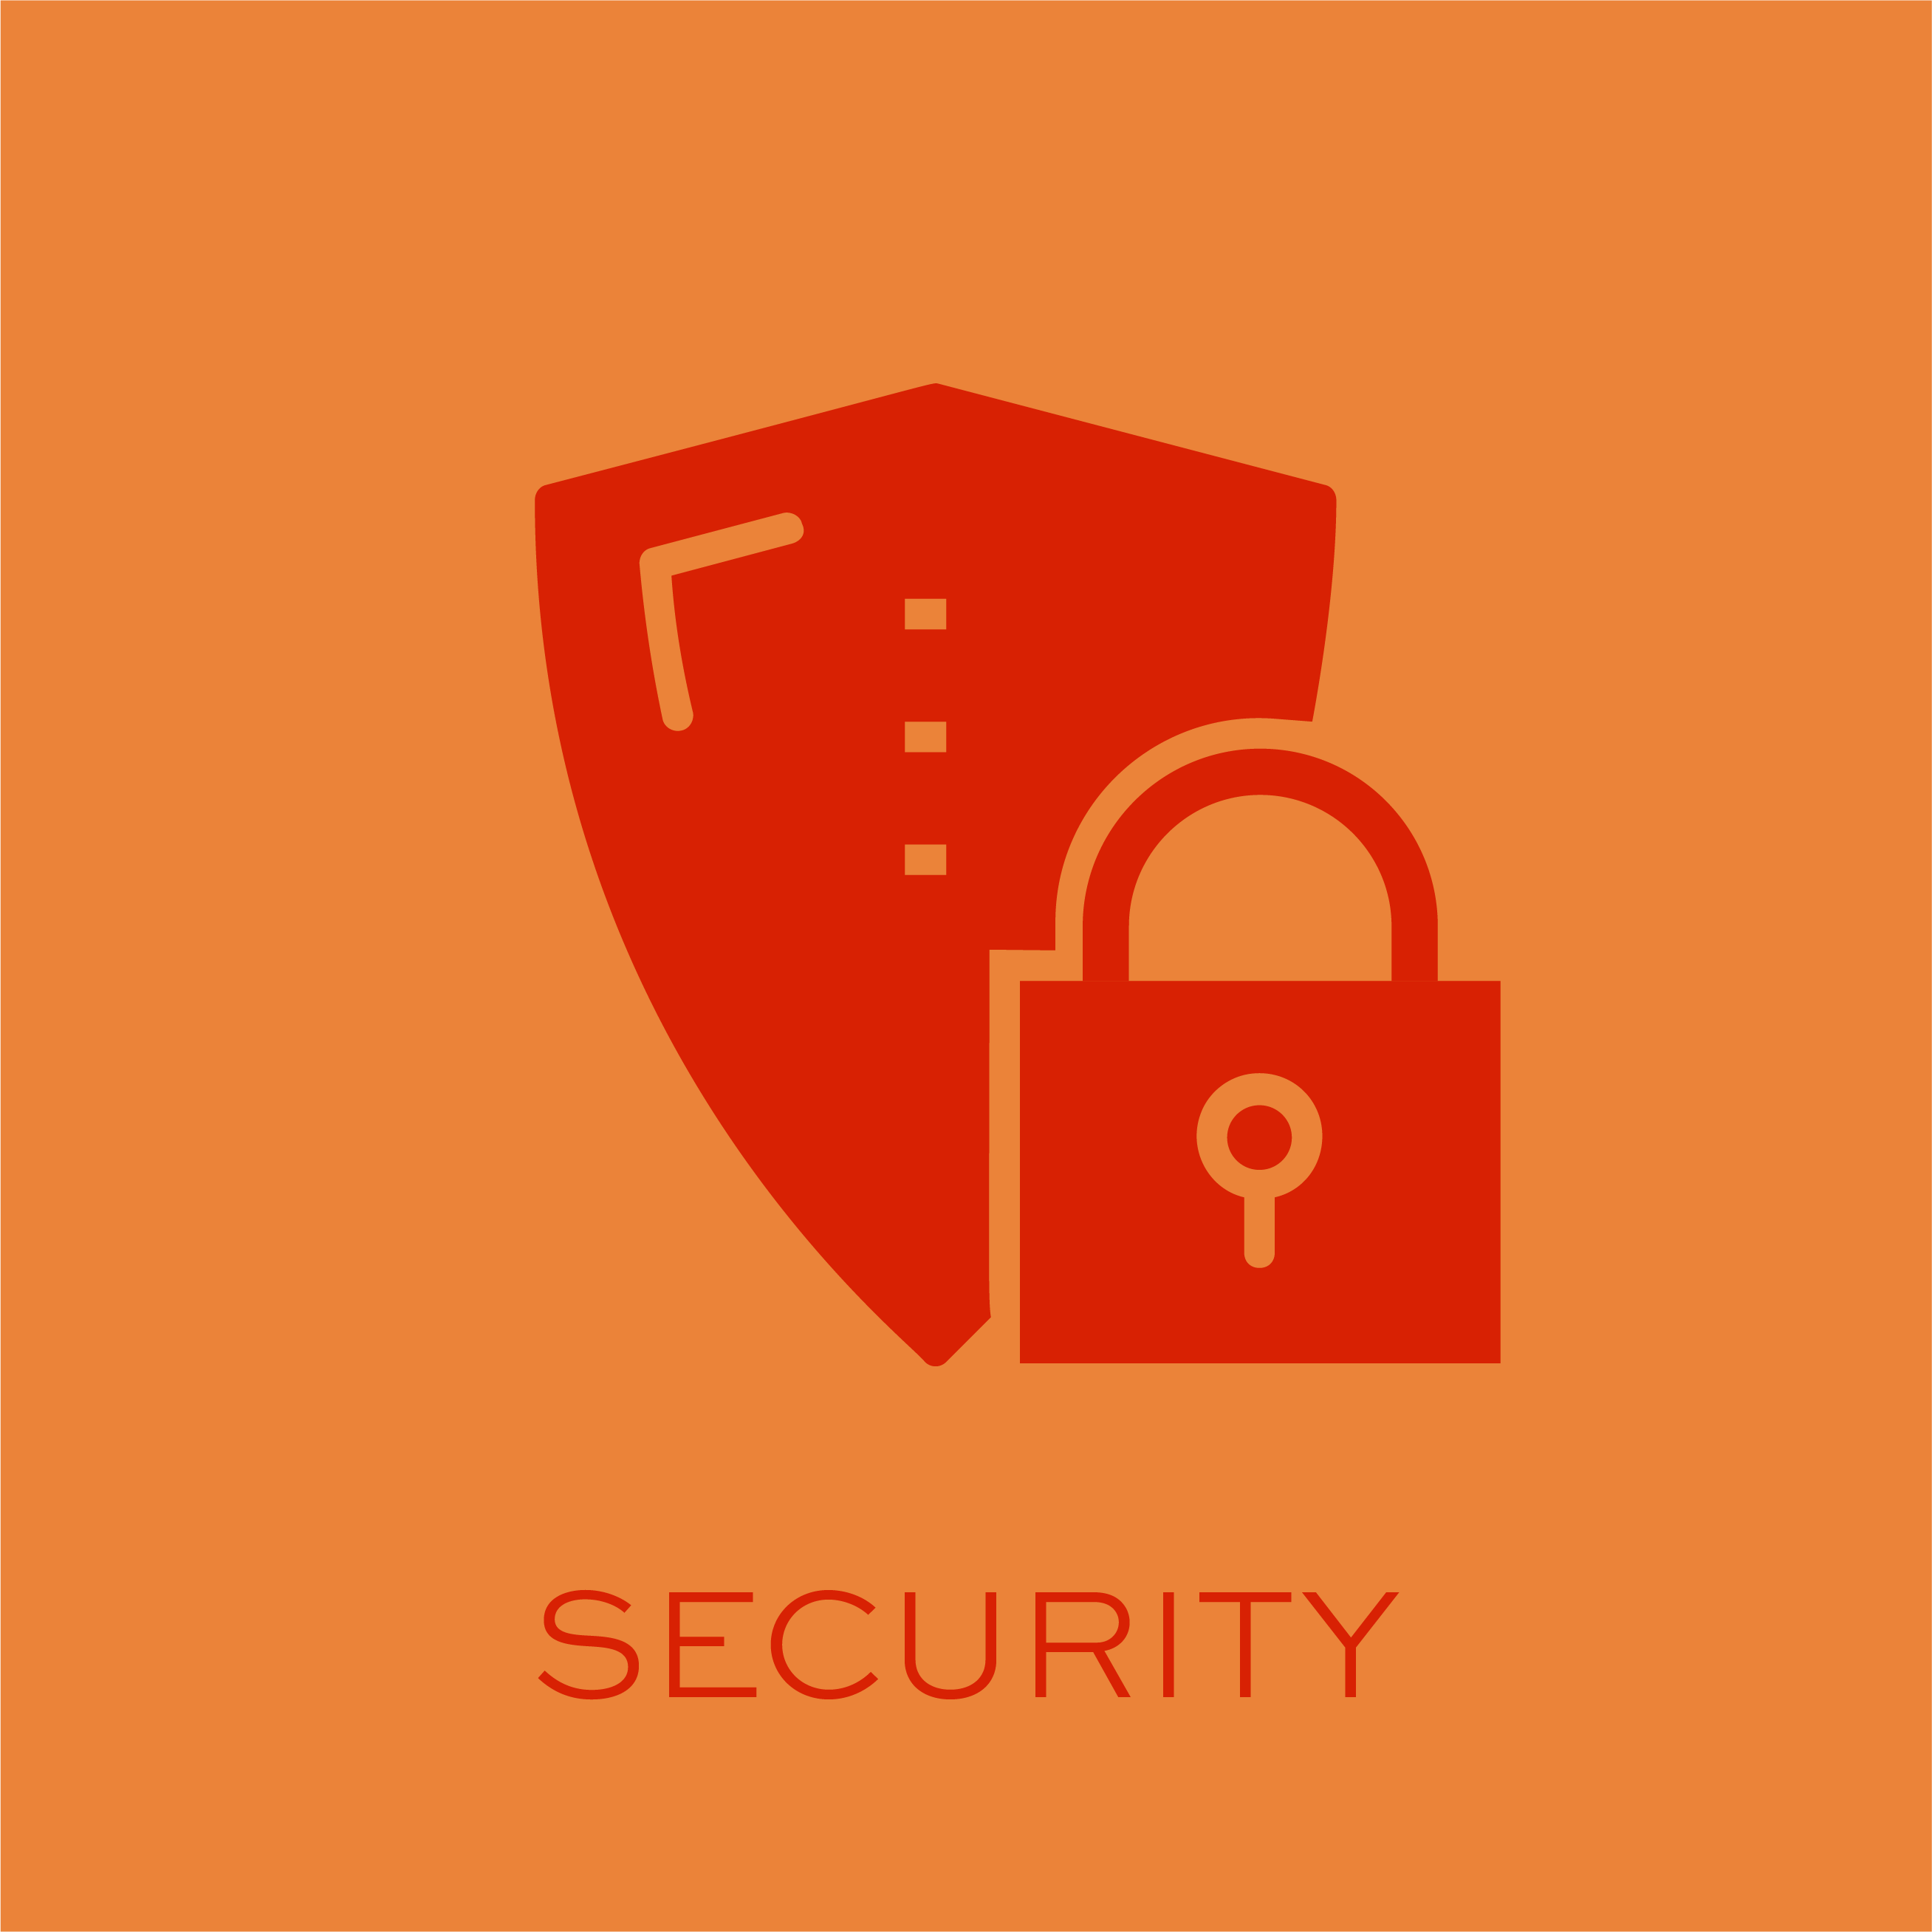 picto security